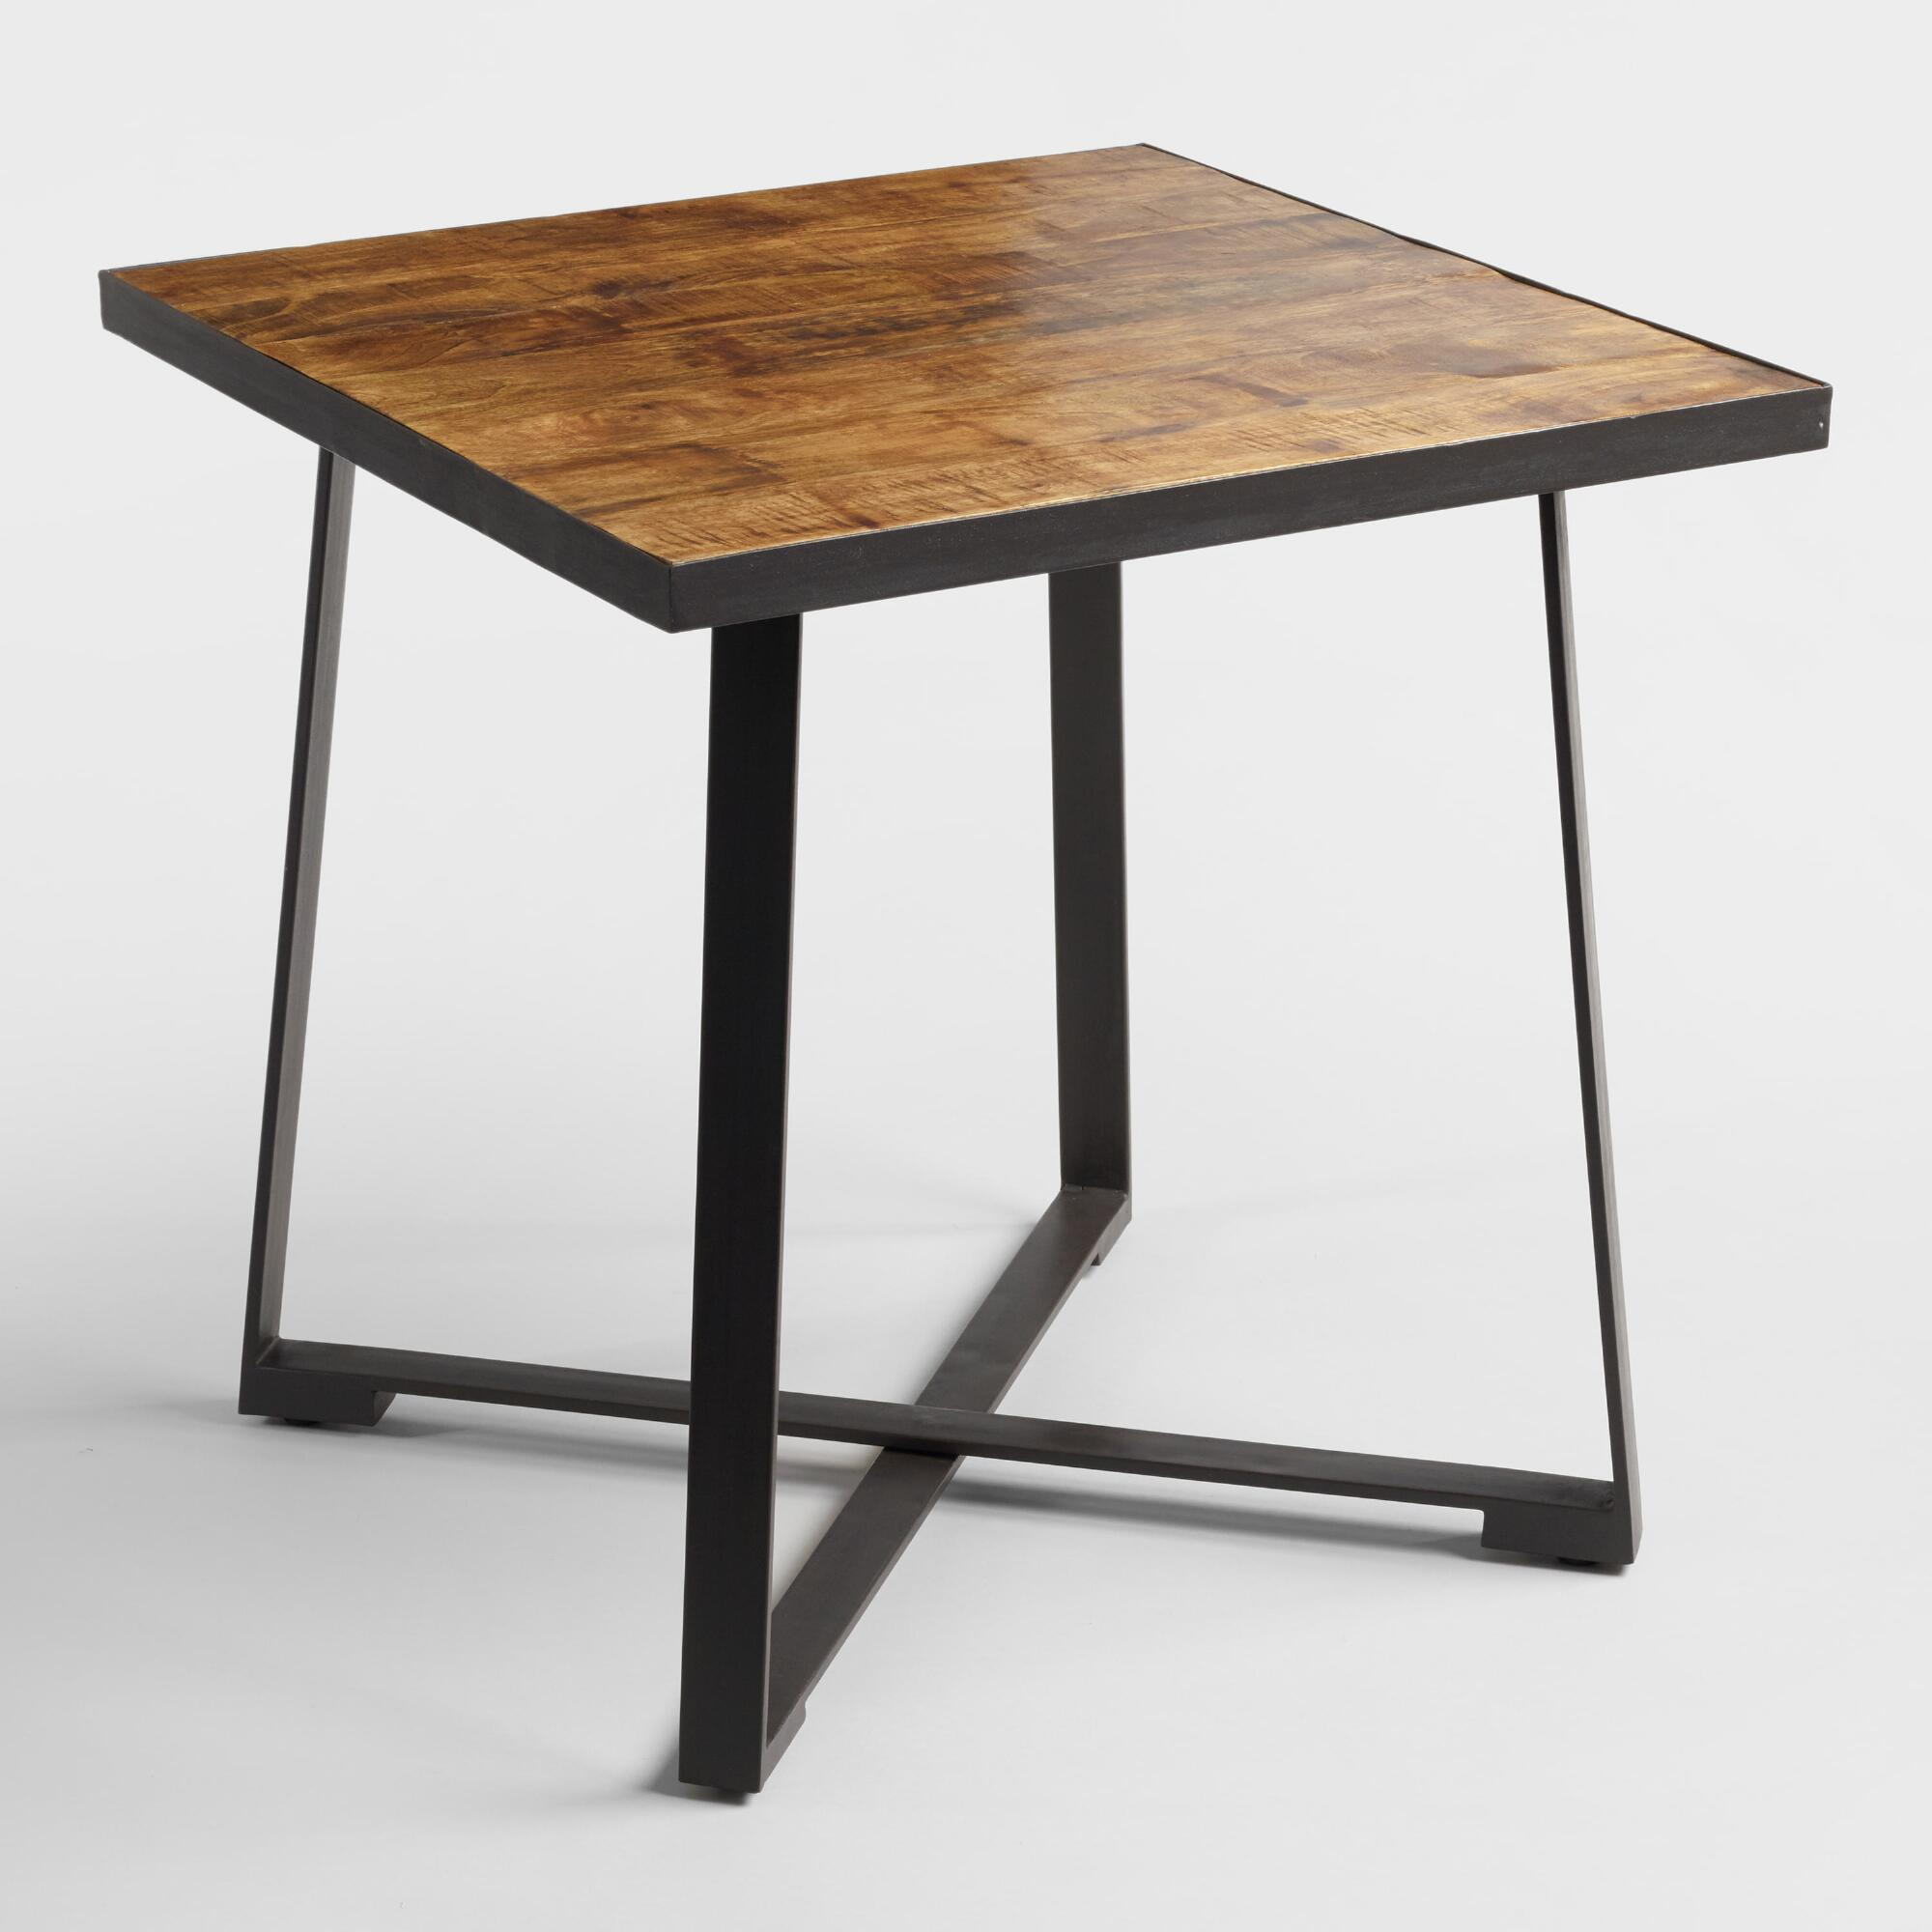 Iron and wood furniture - Square Wood And Metal Mykah Dining Table